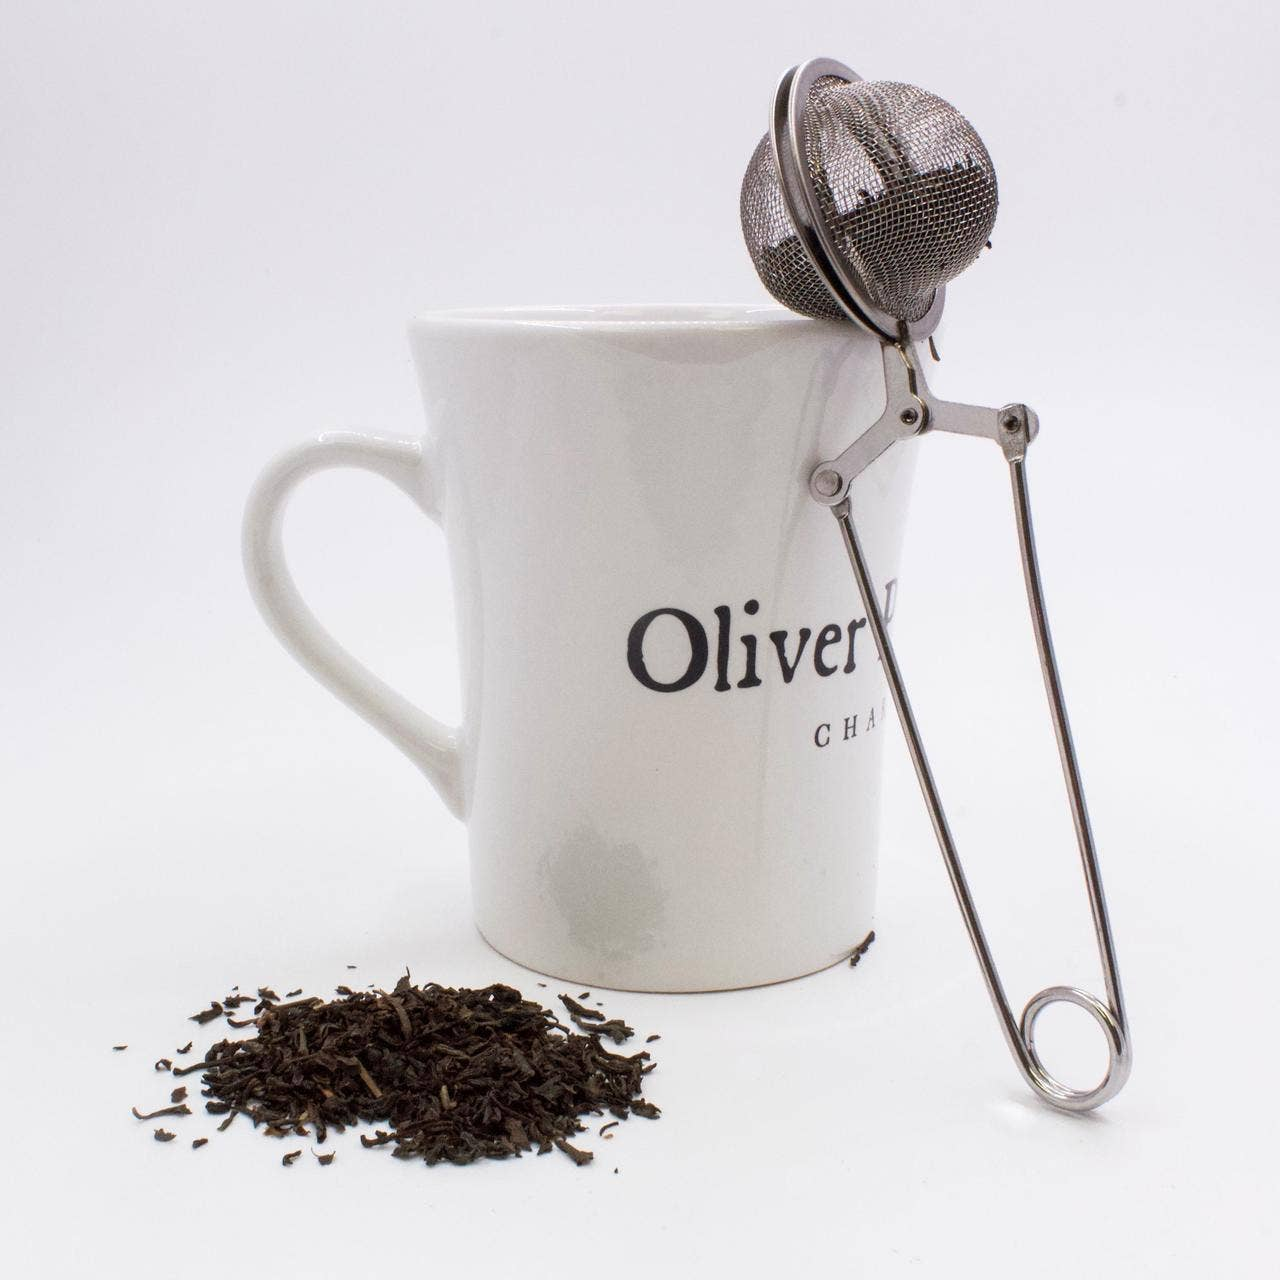 Oliver Pluff & Co. Tea - Giften Market